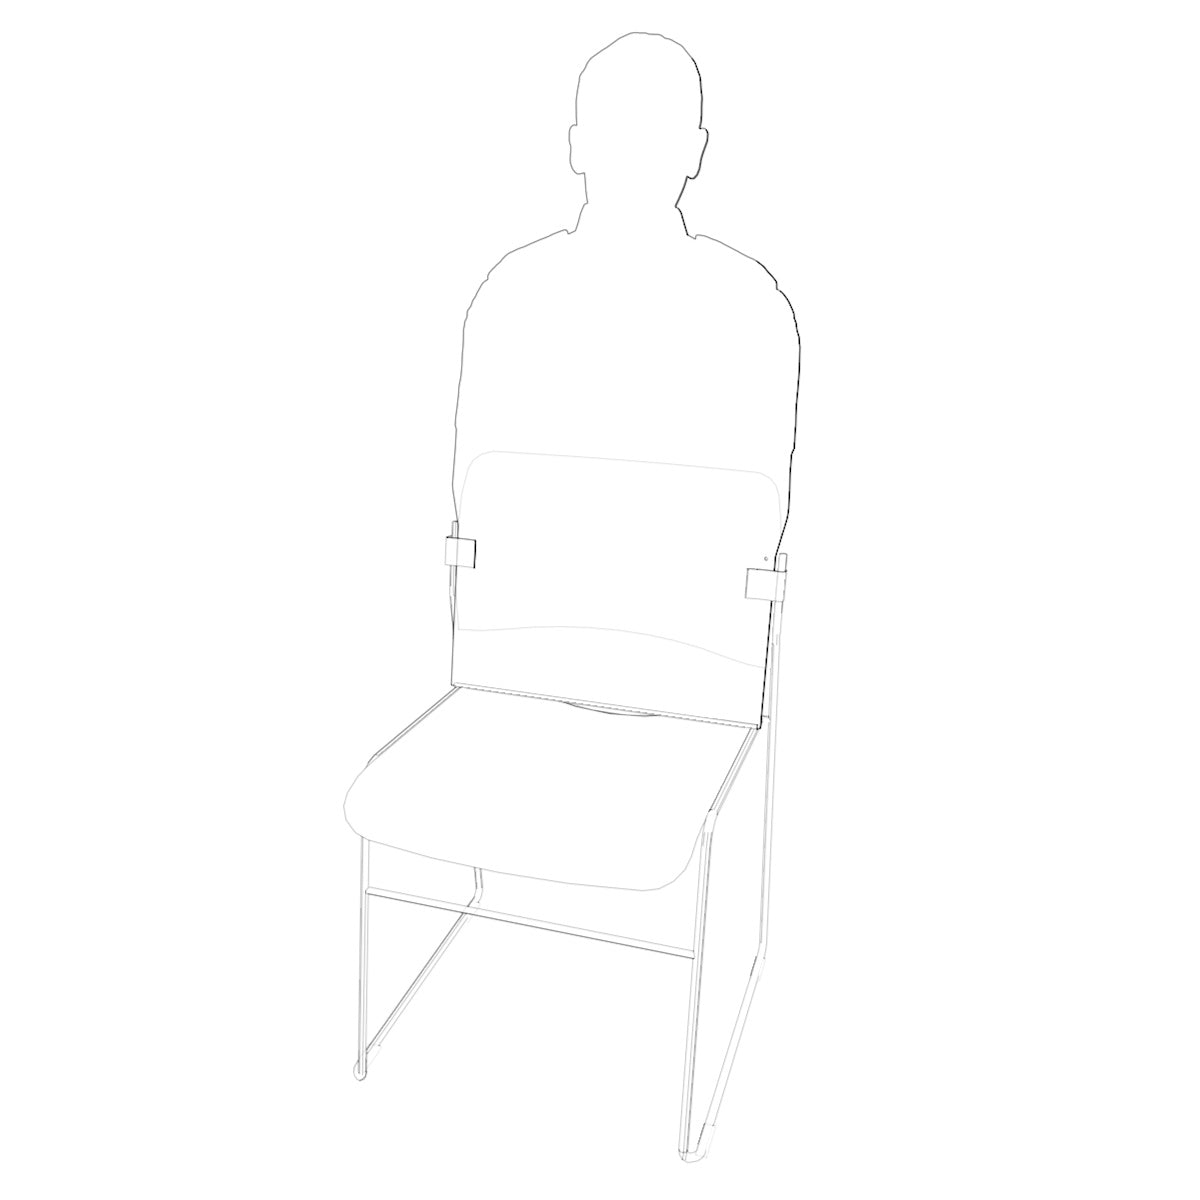 Silhouette on chair with fixings